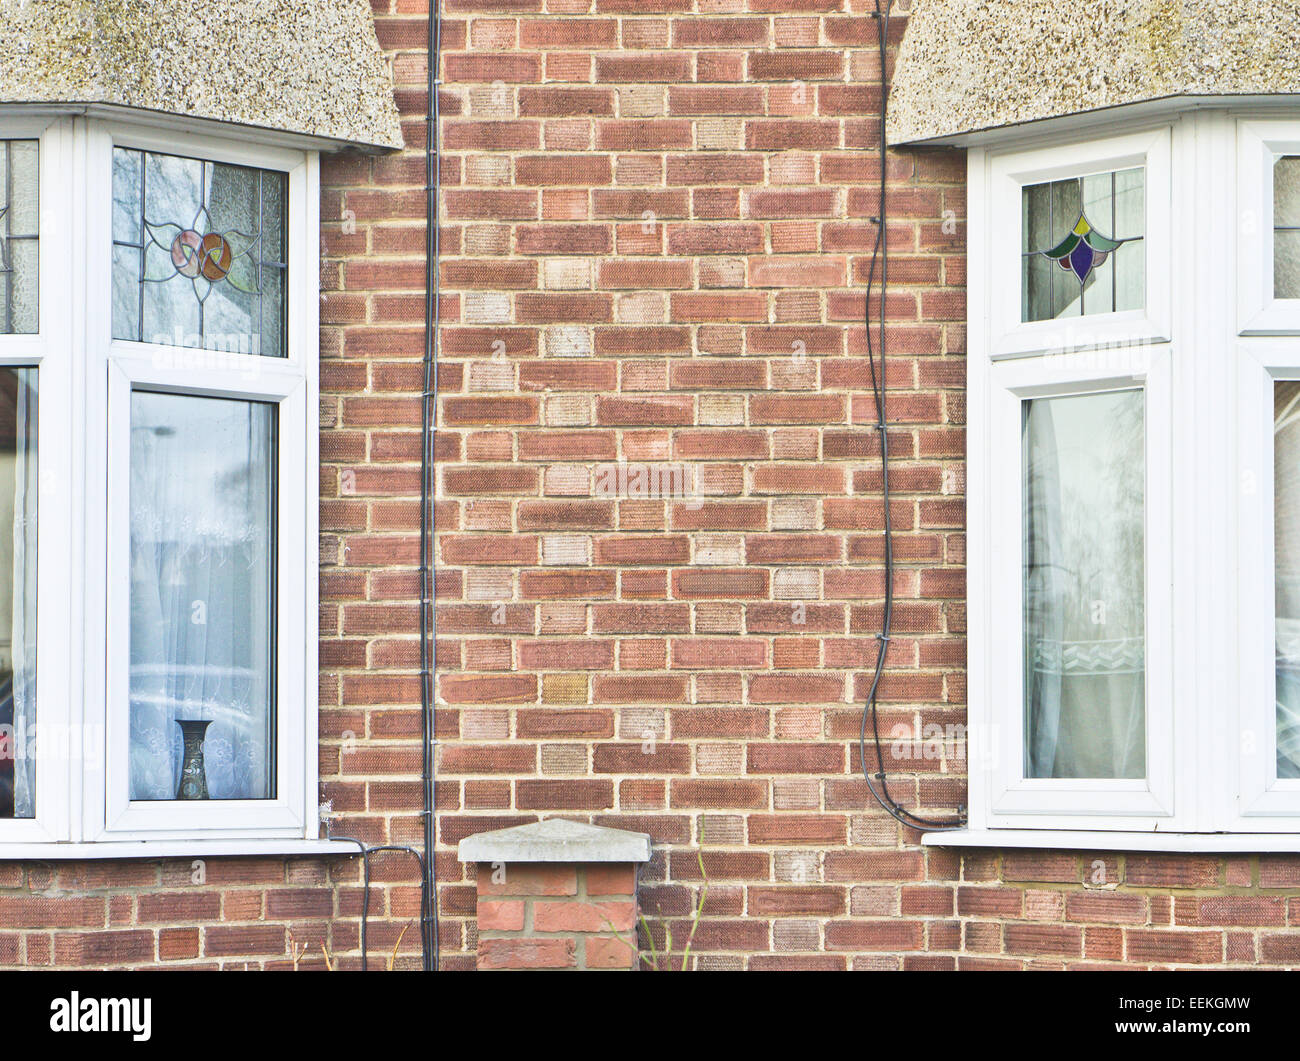 Double glazed bay windows in adjoining houses - Stock Image